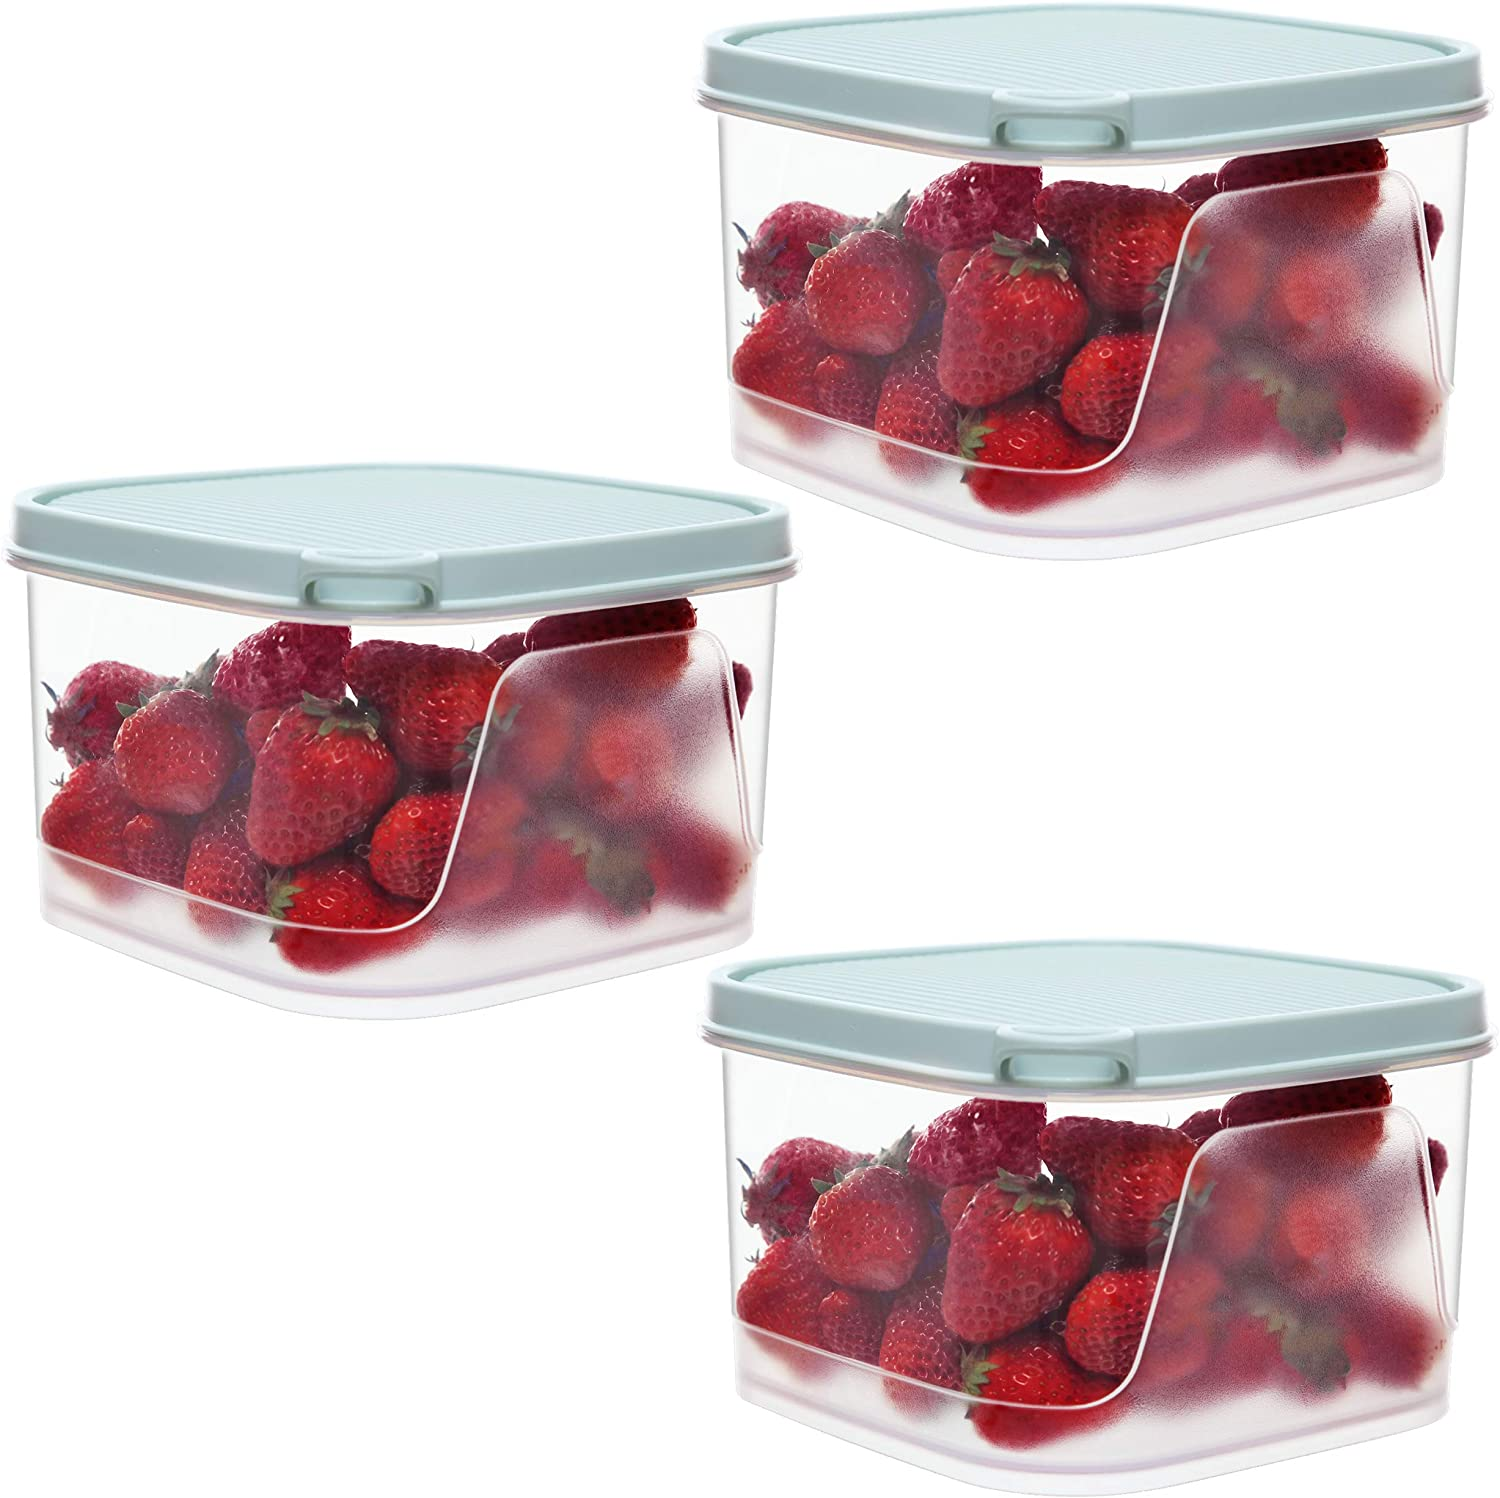 Citylife 3 PCS 86oz Food Storage Containers Airtight Plastic Food Containers with Lids Kitchen Fridge Containers for Food Leak Proof & Microwave Safe